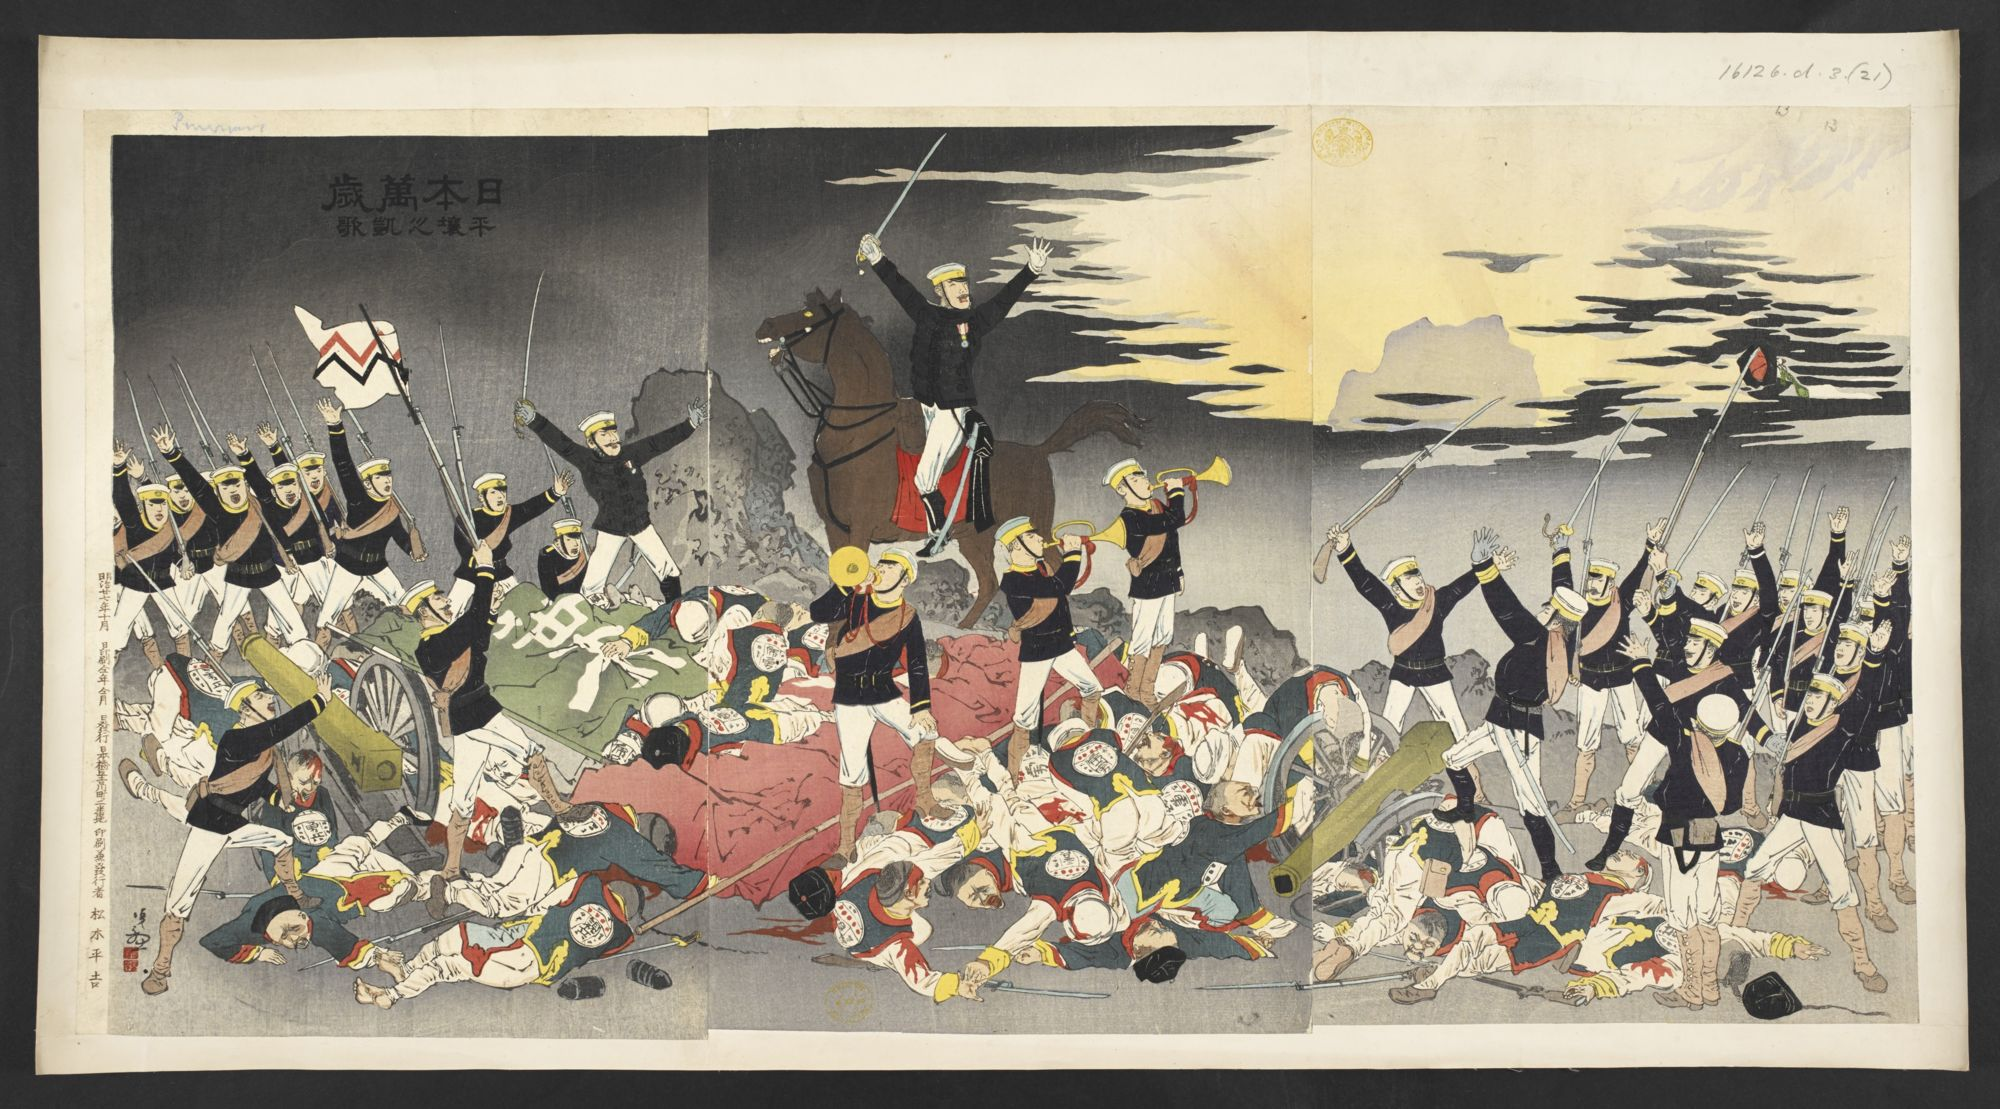 a history of the sino japanese war of 1894 to 1895 Browsing subject area: sino-japanese war, 1894-1895 (exclude extended shelves) you can also browse an alphabetical list from this subject or from: sino-japanese war, 1894-1895.